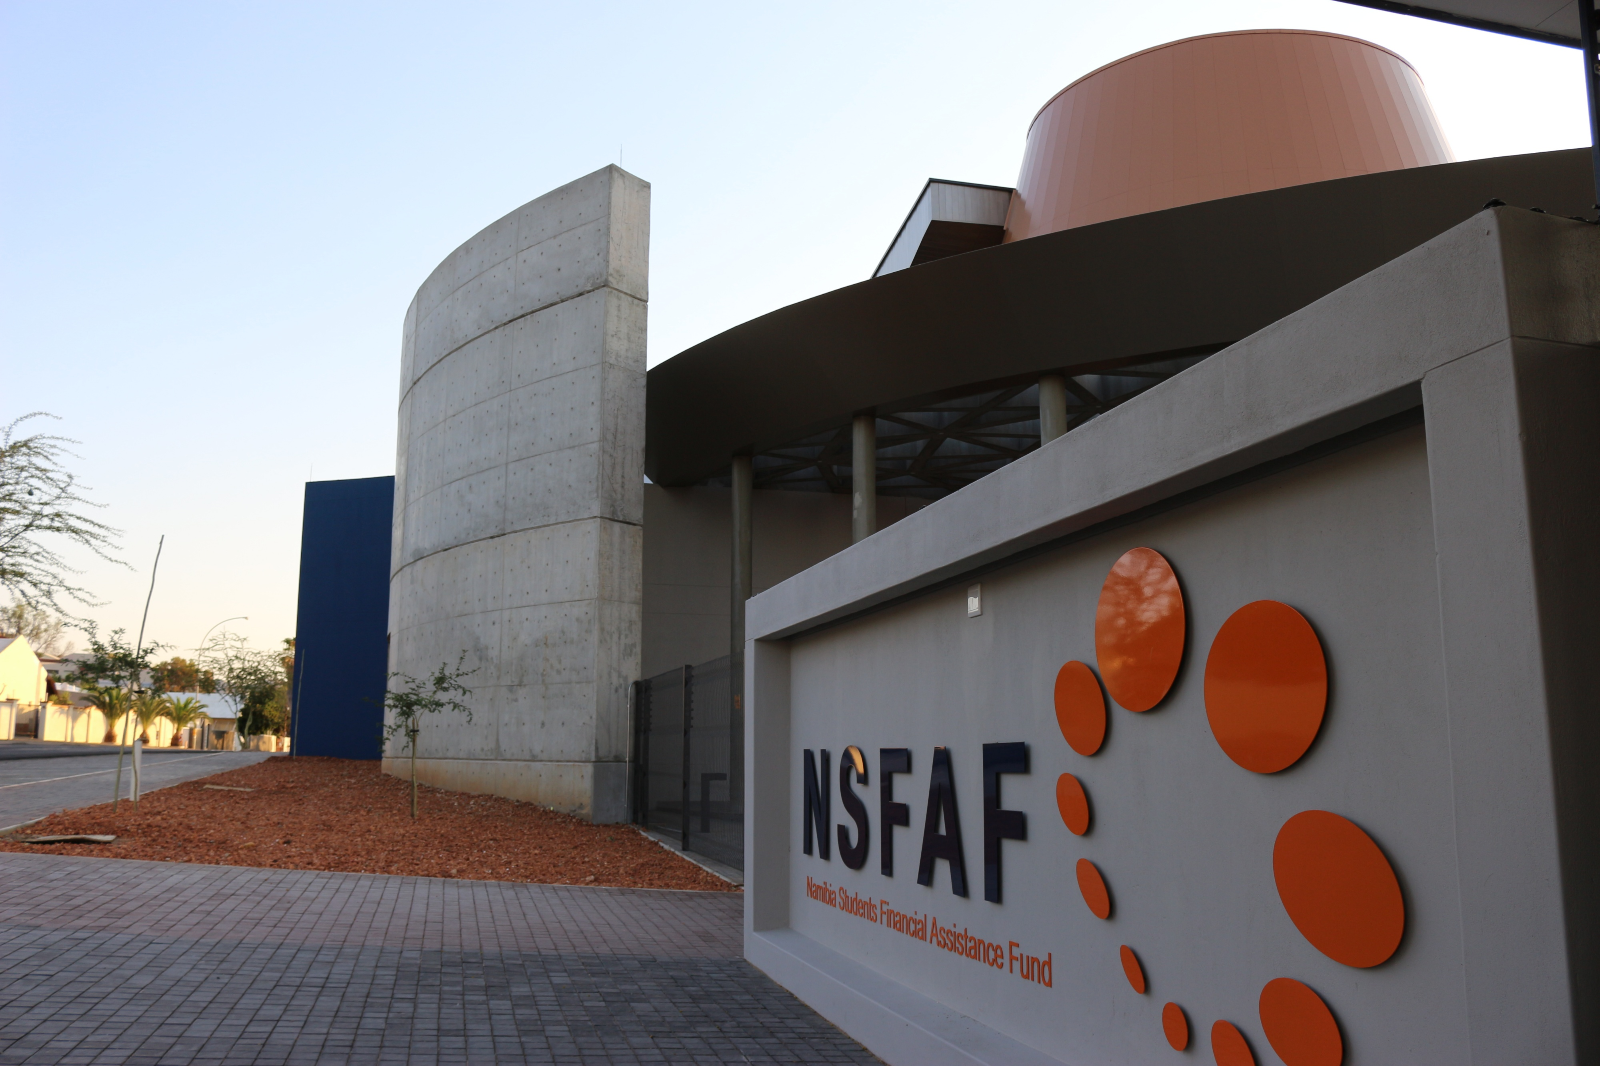 NSFAF - Namibia Student Financial Assistance Fund